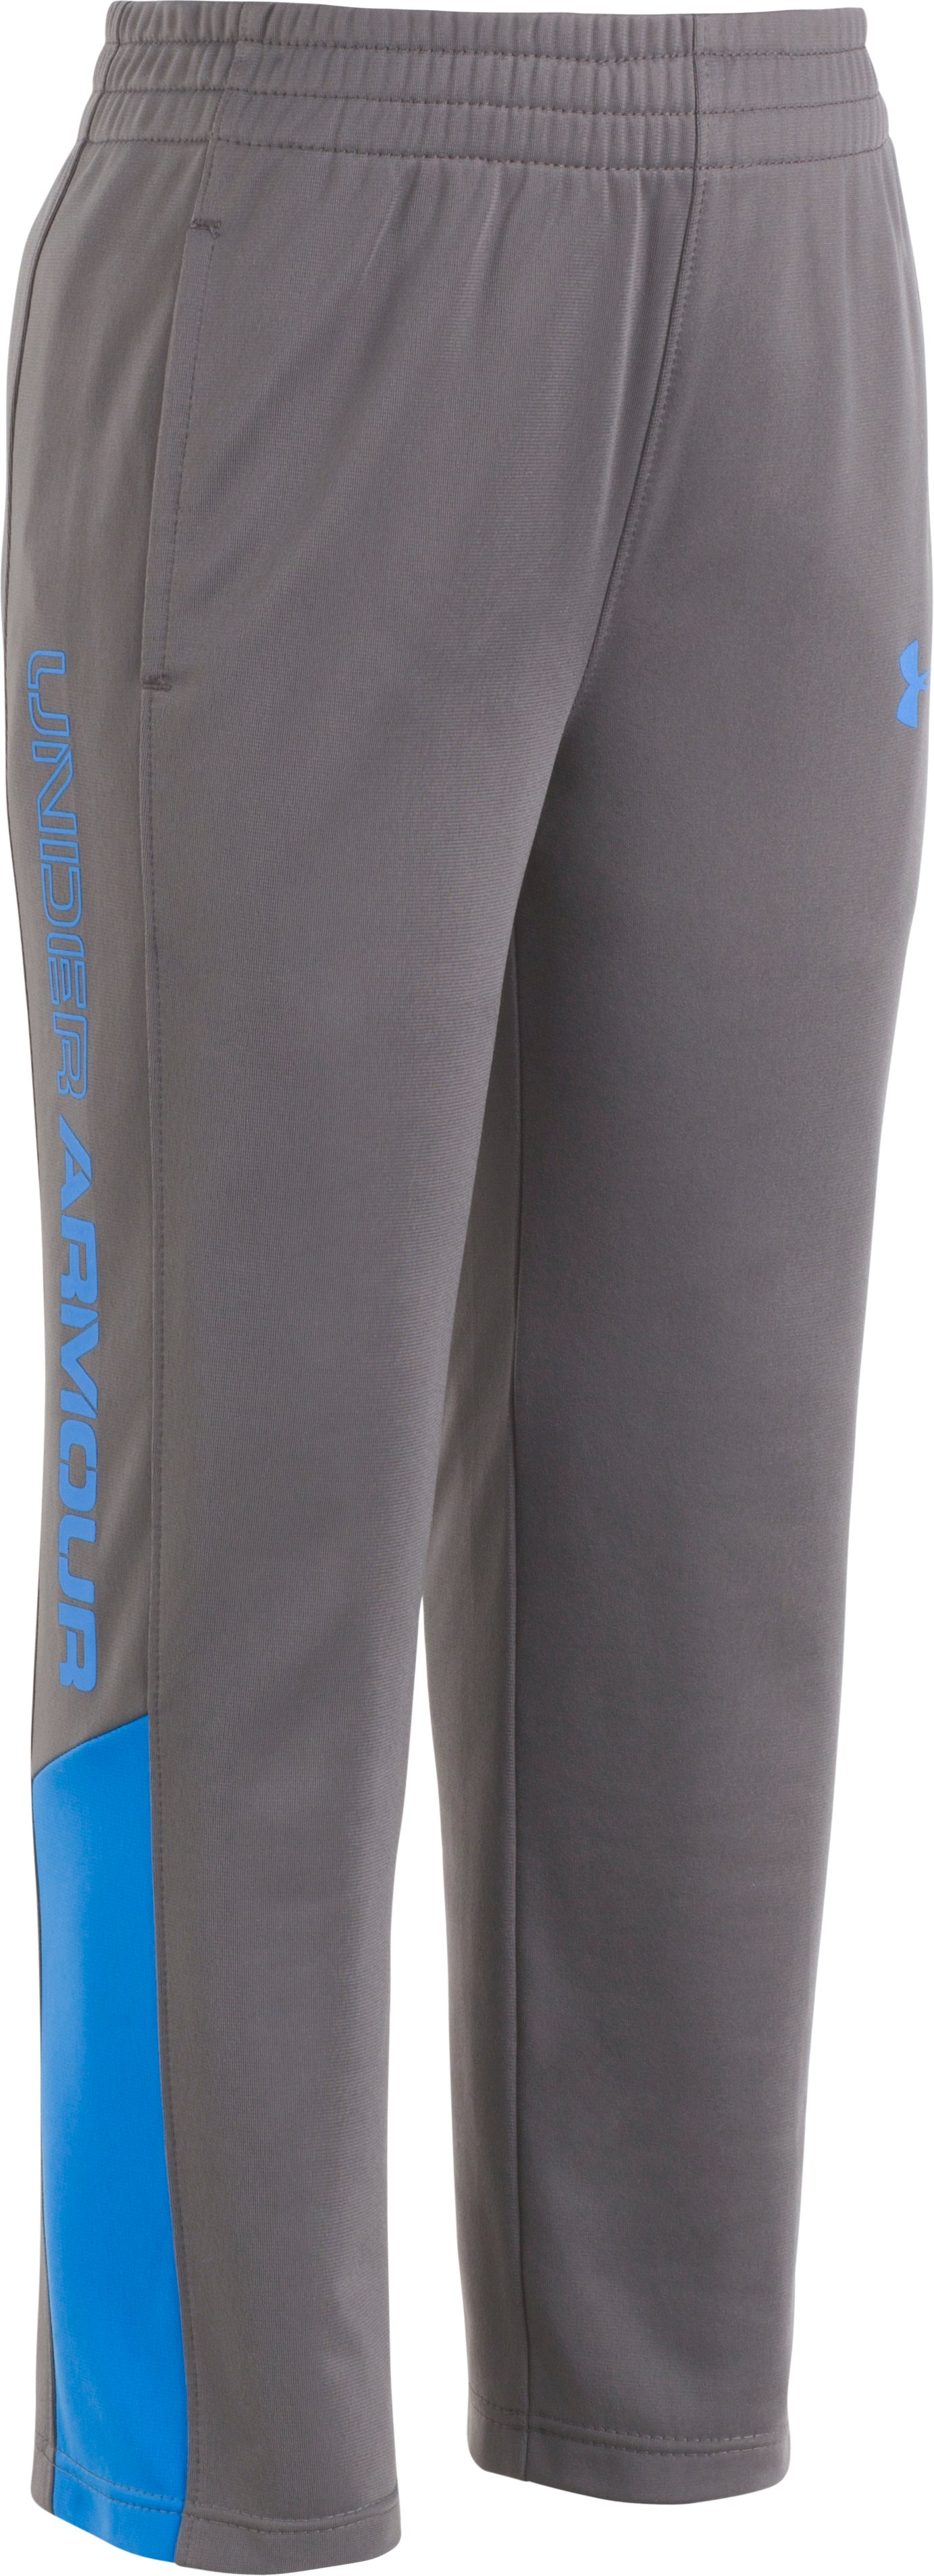 Boys' Pre-School UA Brawler Pants, Graphite